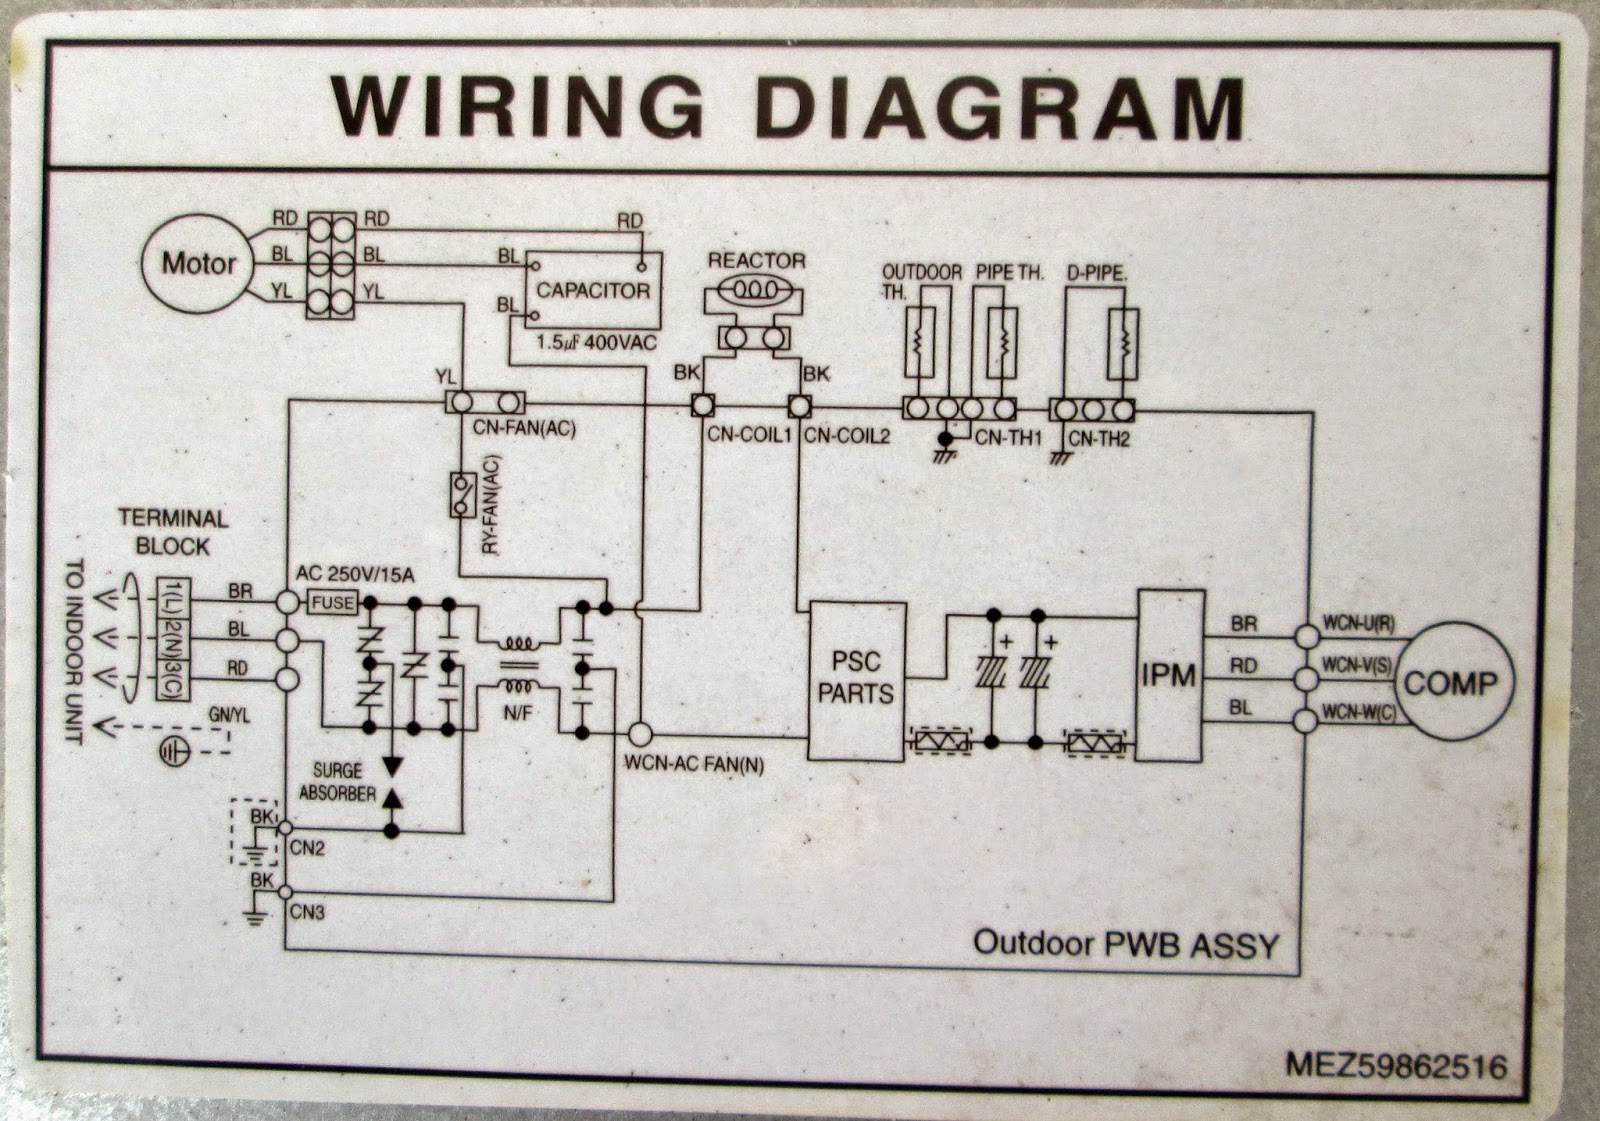 Carrier Split Ac Wiring Diagram System Air Conditioner Circu Subwoofer Sonic Electronix Service Kota Serang Baru Oktober 2014